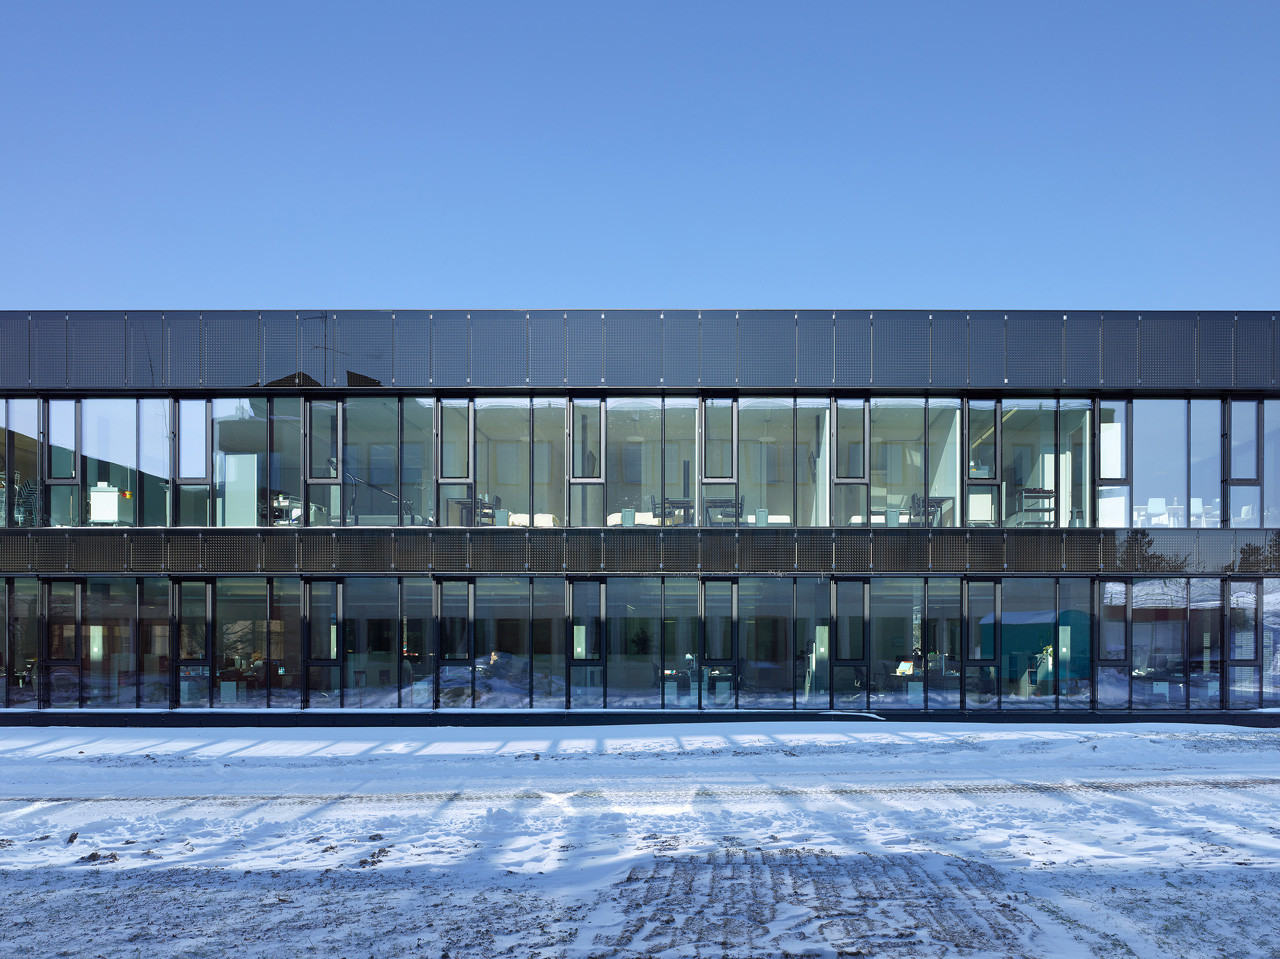 Extension Nestle Research Center / Burckhardt + Partner, Courtesy of Burckhardt + Partner